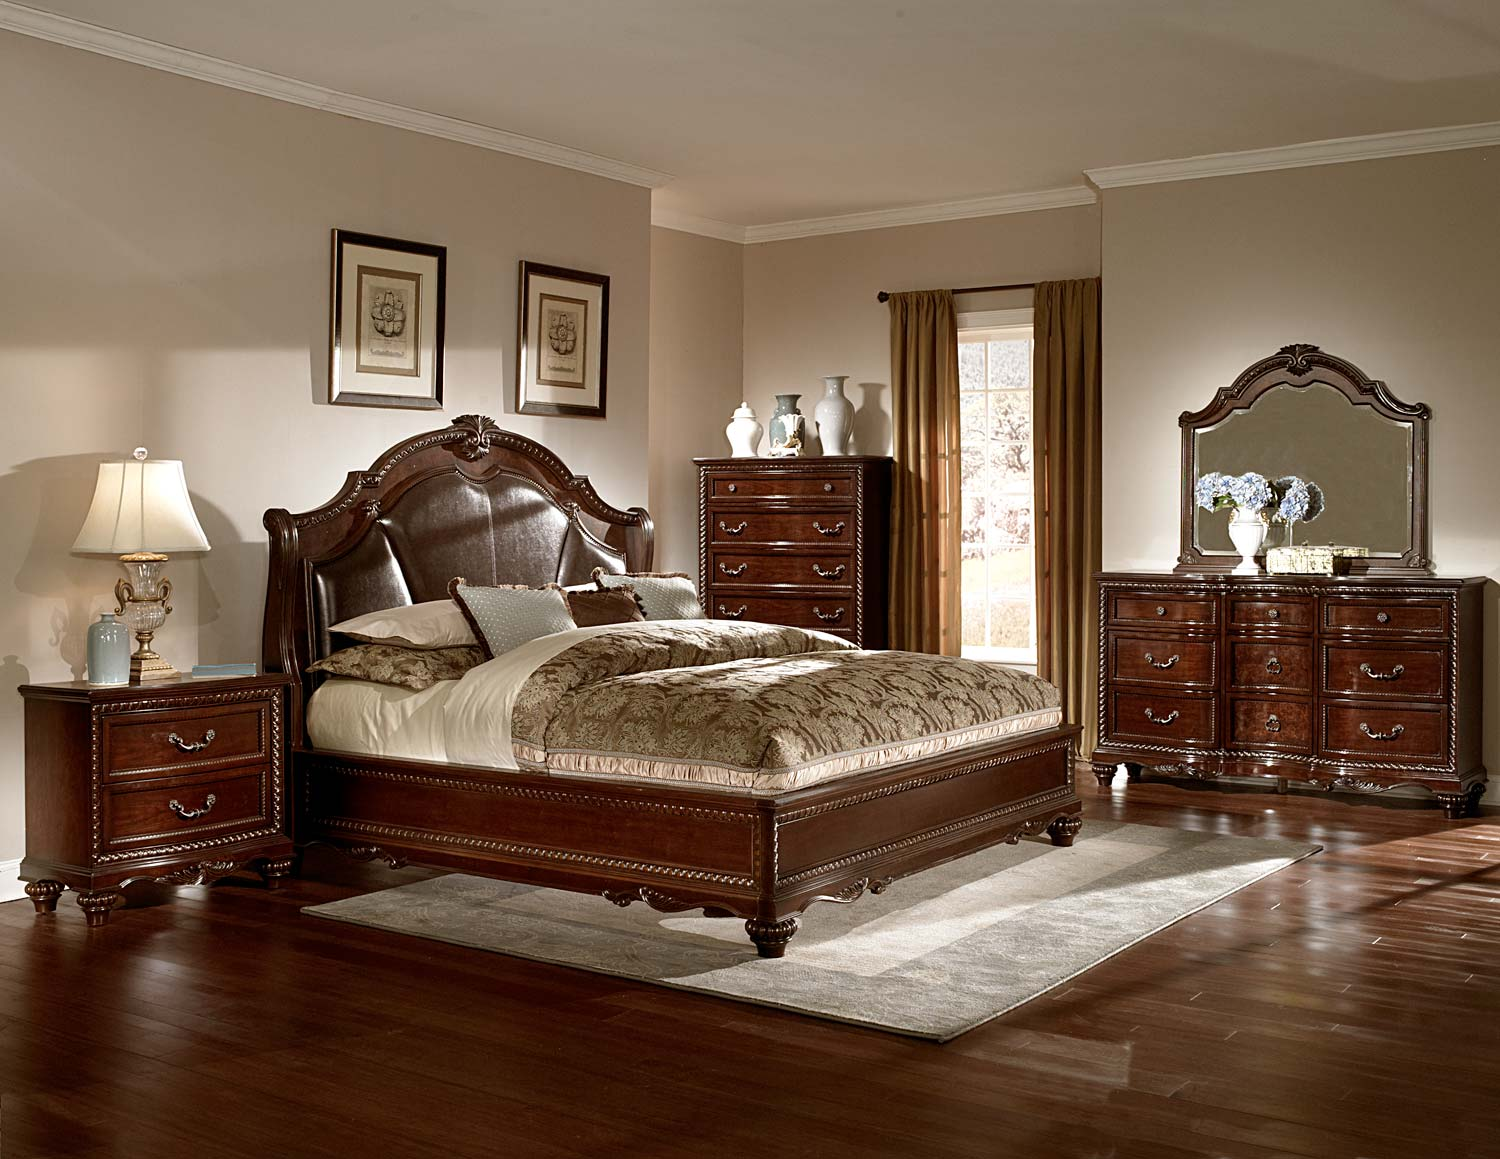 Homelegance Hampstead Court Bedroom Set - Cherry